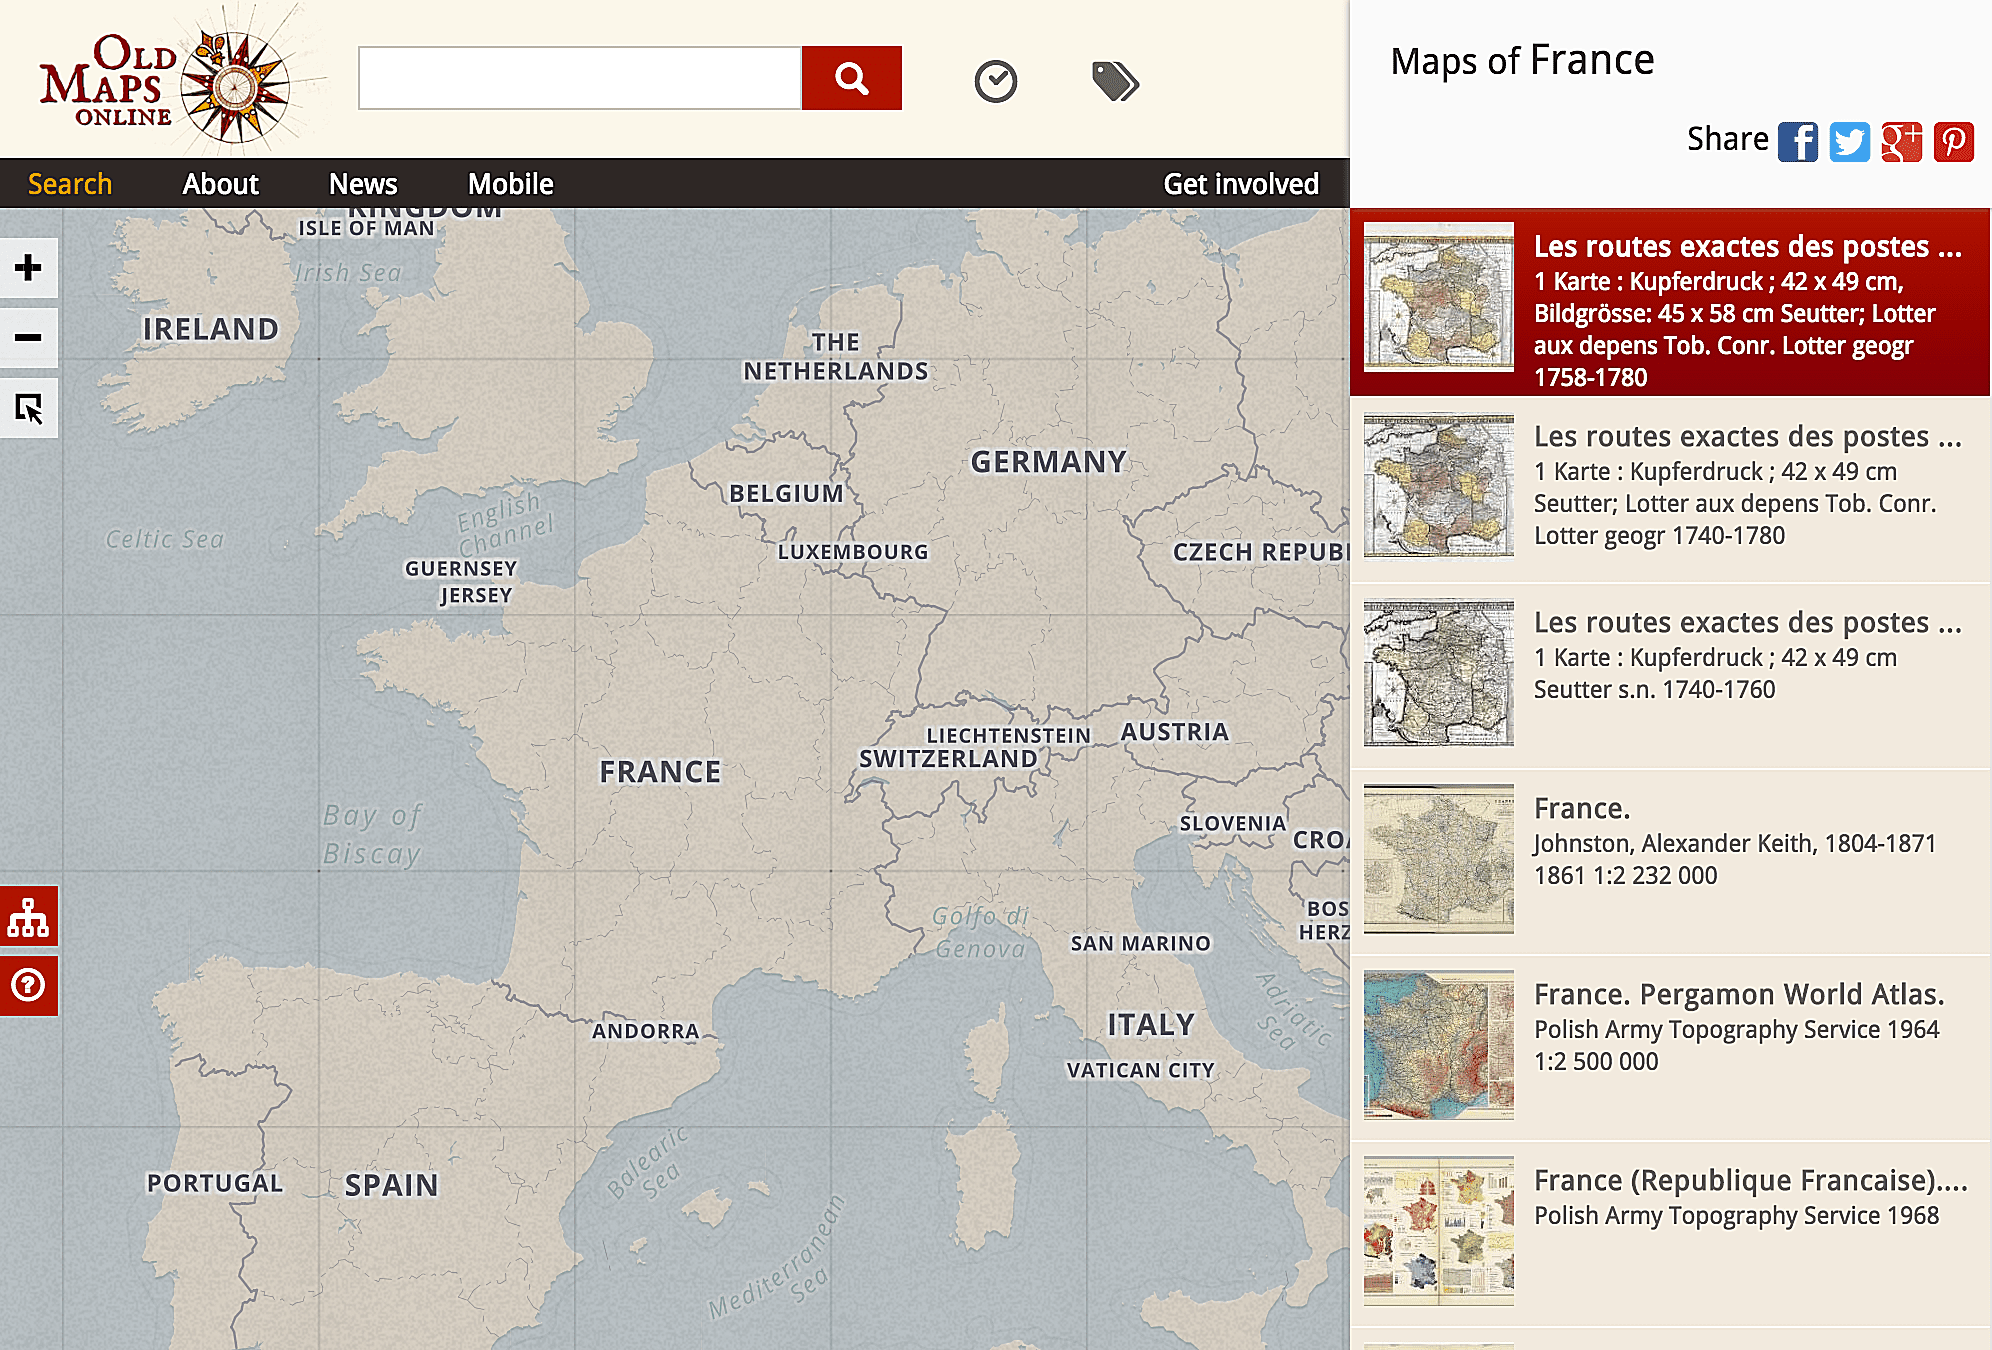 OldMapsOnline.org indexes over 400,000 historical maps from a variety of different online providers.